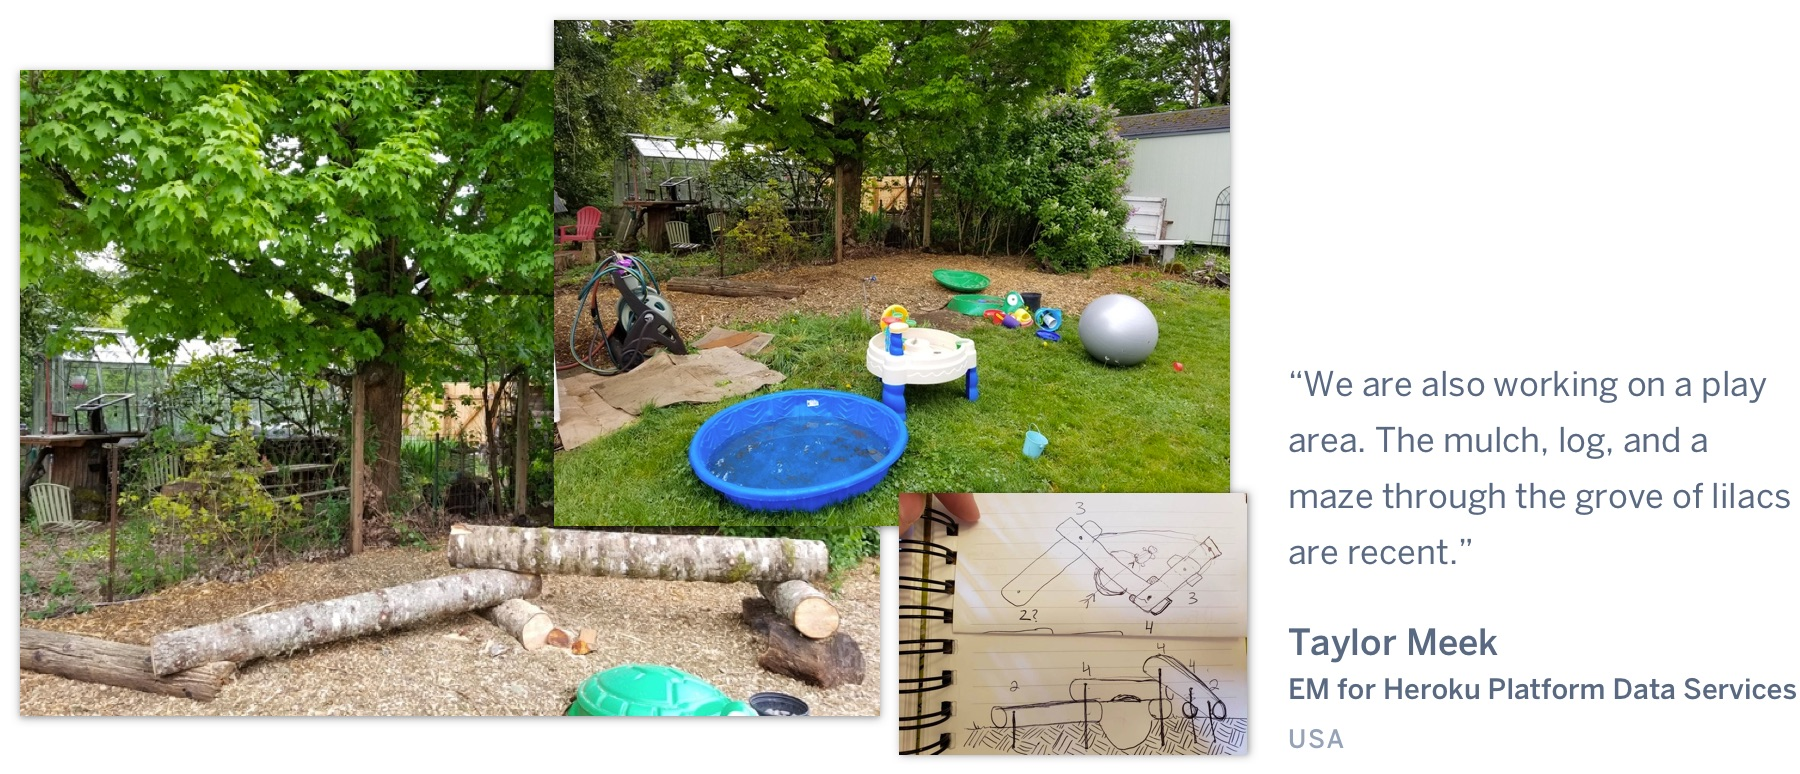 "Another backyard with a play area, with the quote ""We are also working on a play area. The mulch, log, and a maze through the grove of lilacs are recent."" Taylor Meek, EM for Heroku Platform Data Services, USA."